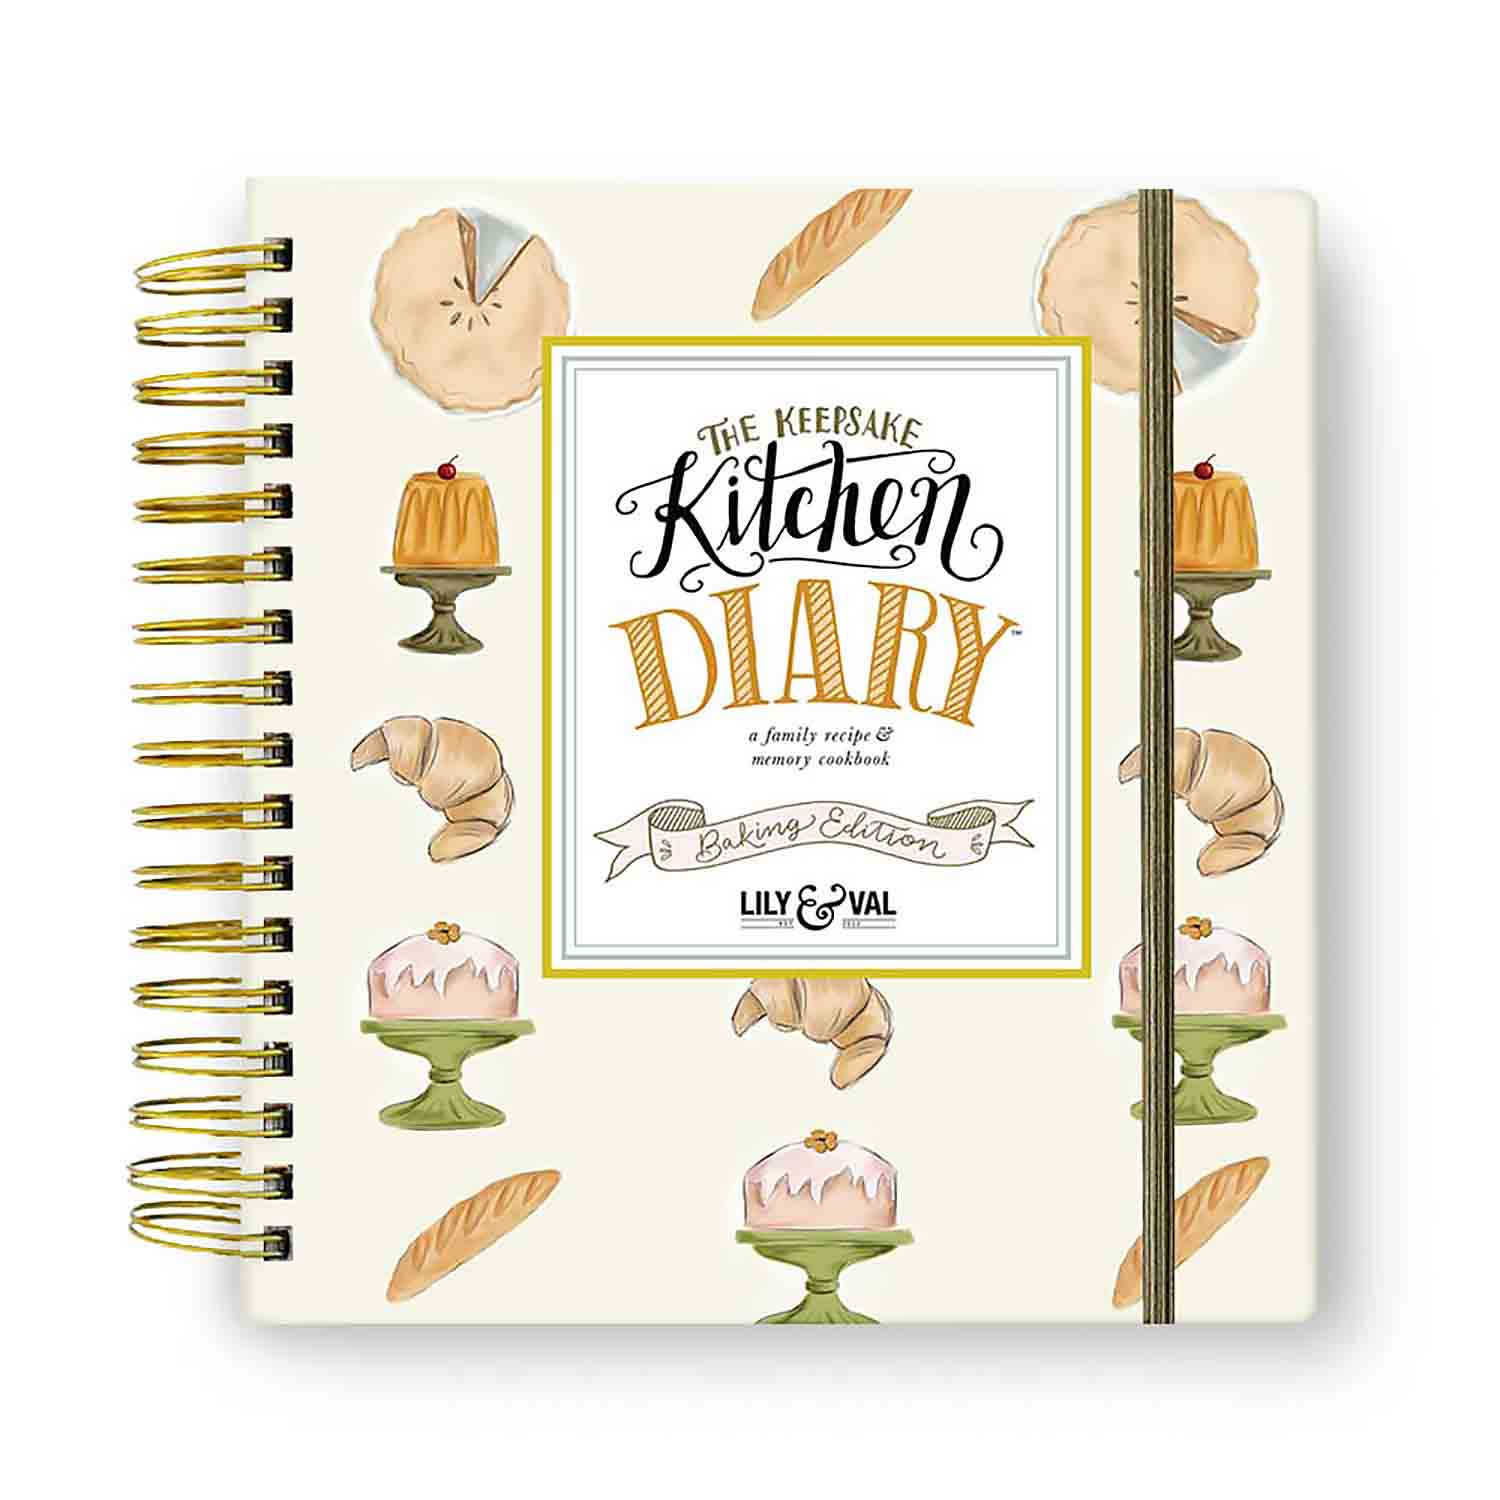 The Keepsake Kitchen Diary - Baking Edition